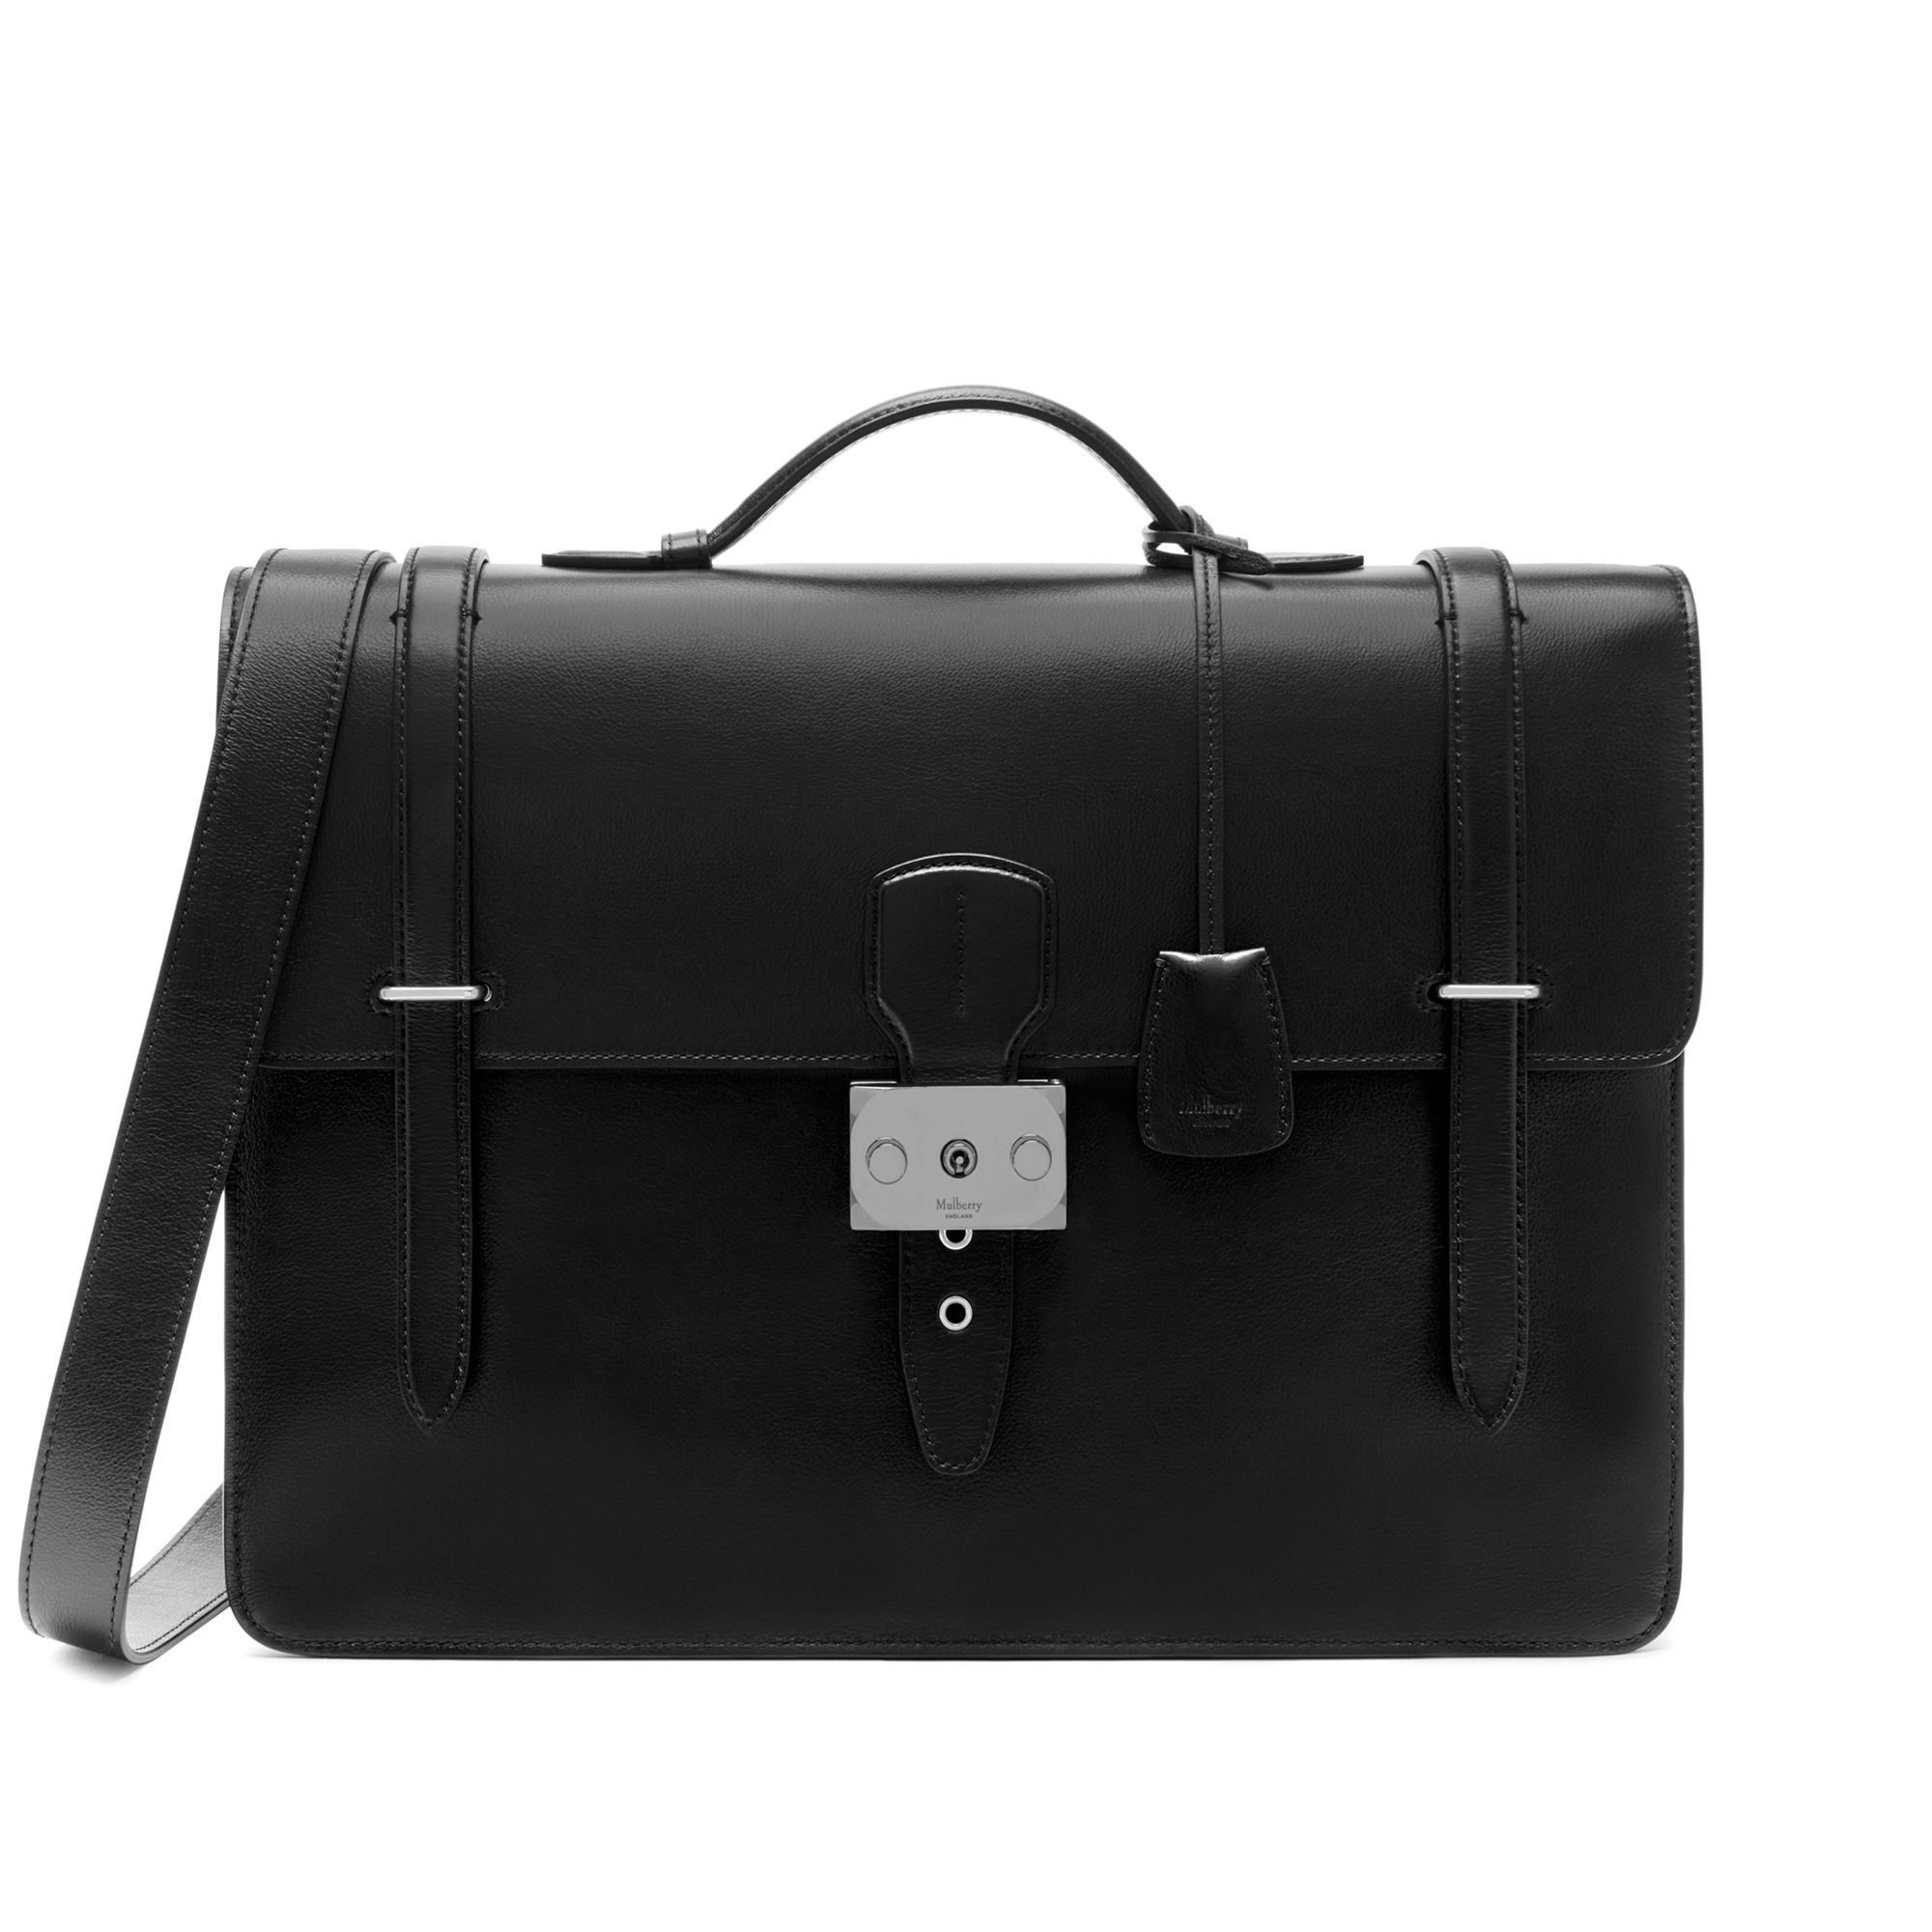 rushley-briefcase-black-silky-calf